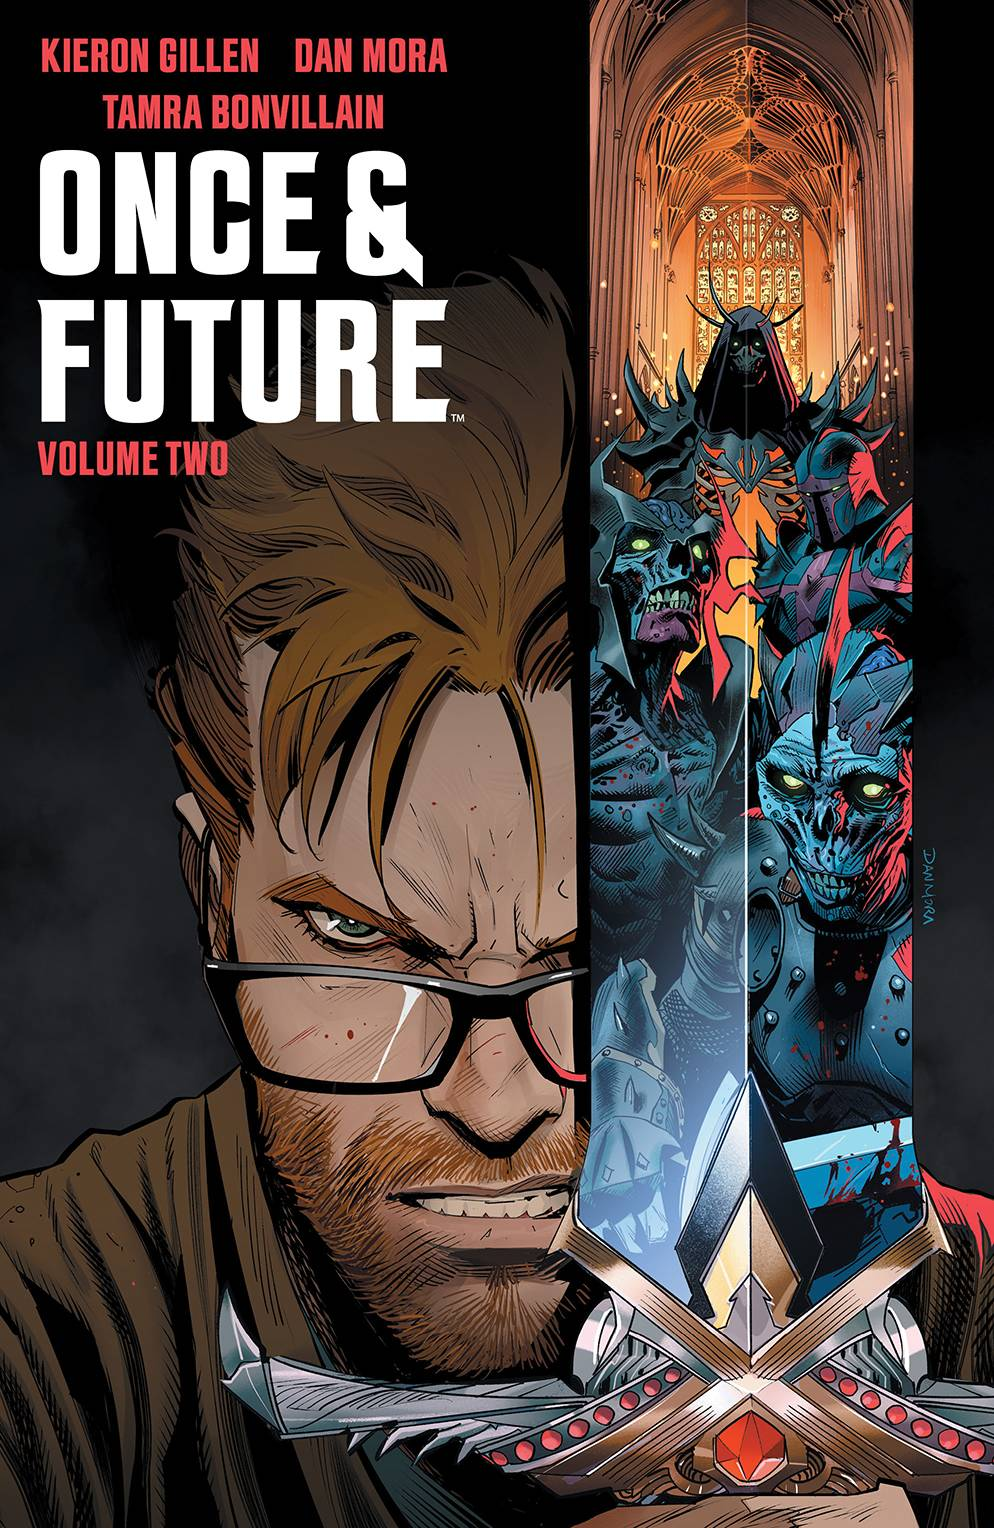 ONCE & FUTURE TPB VOL 02